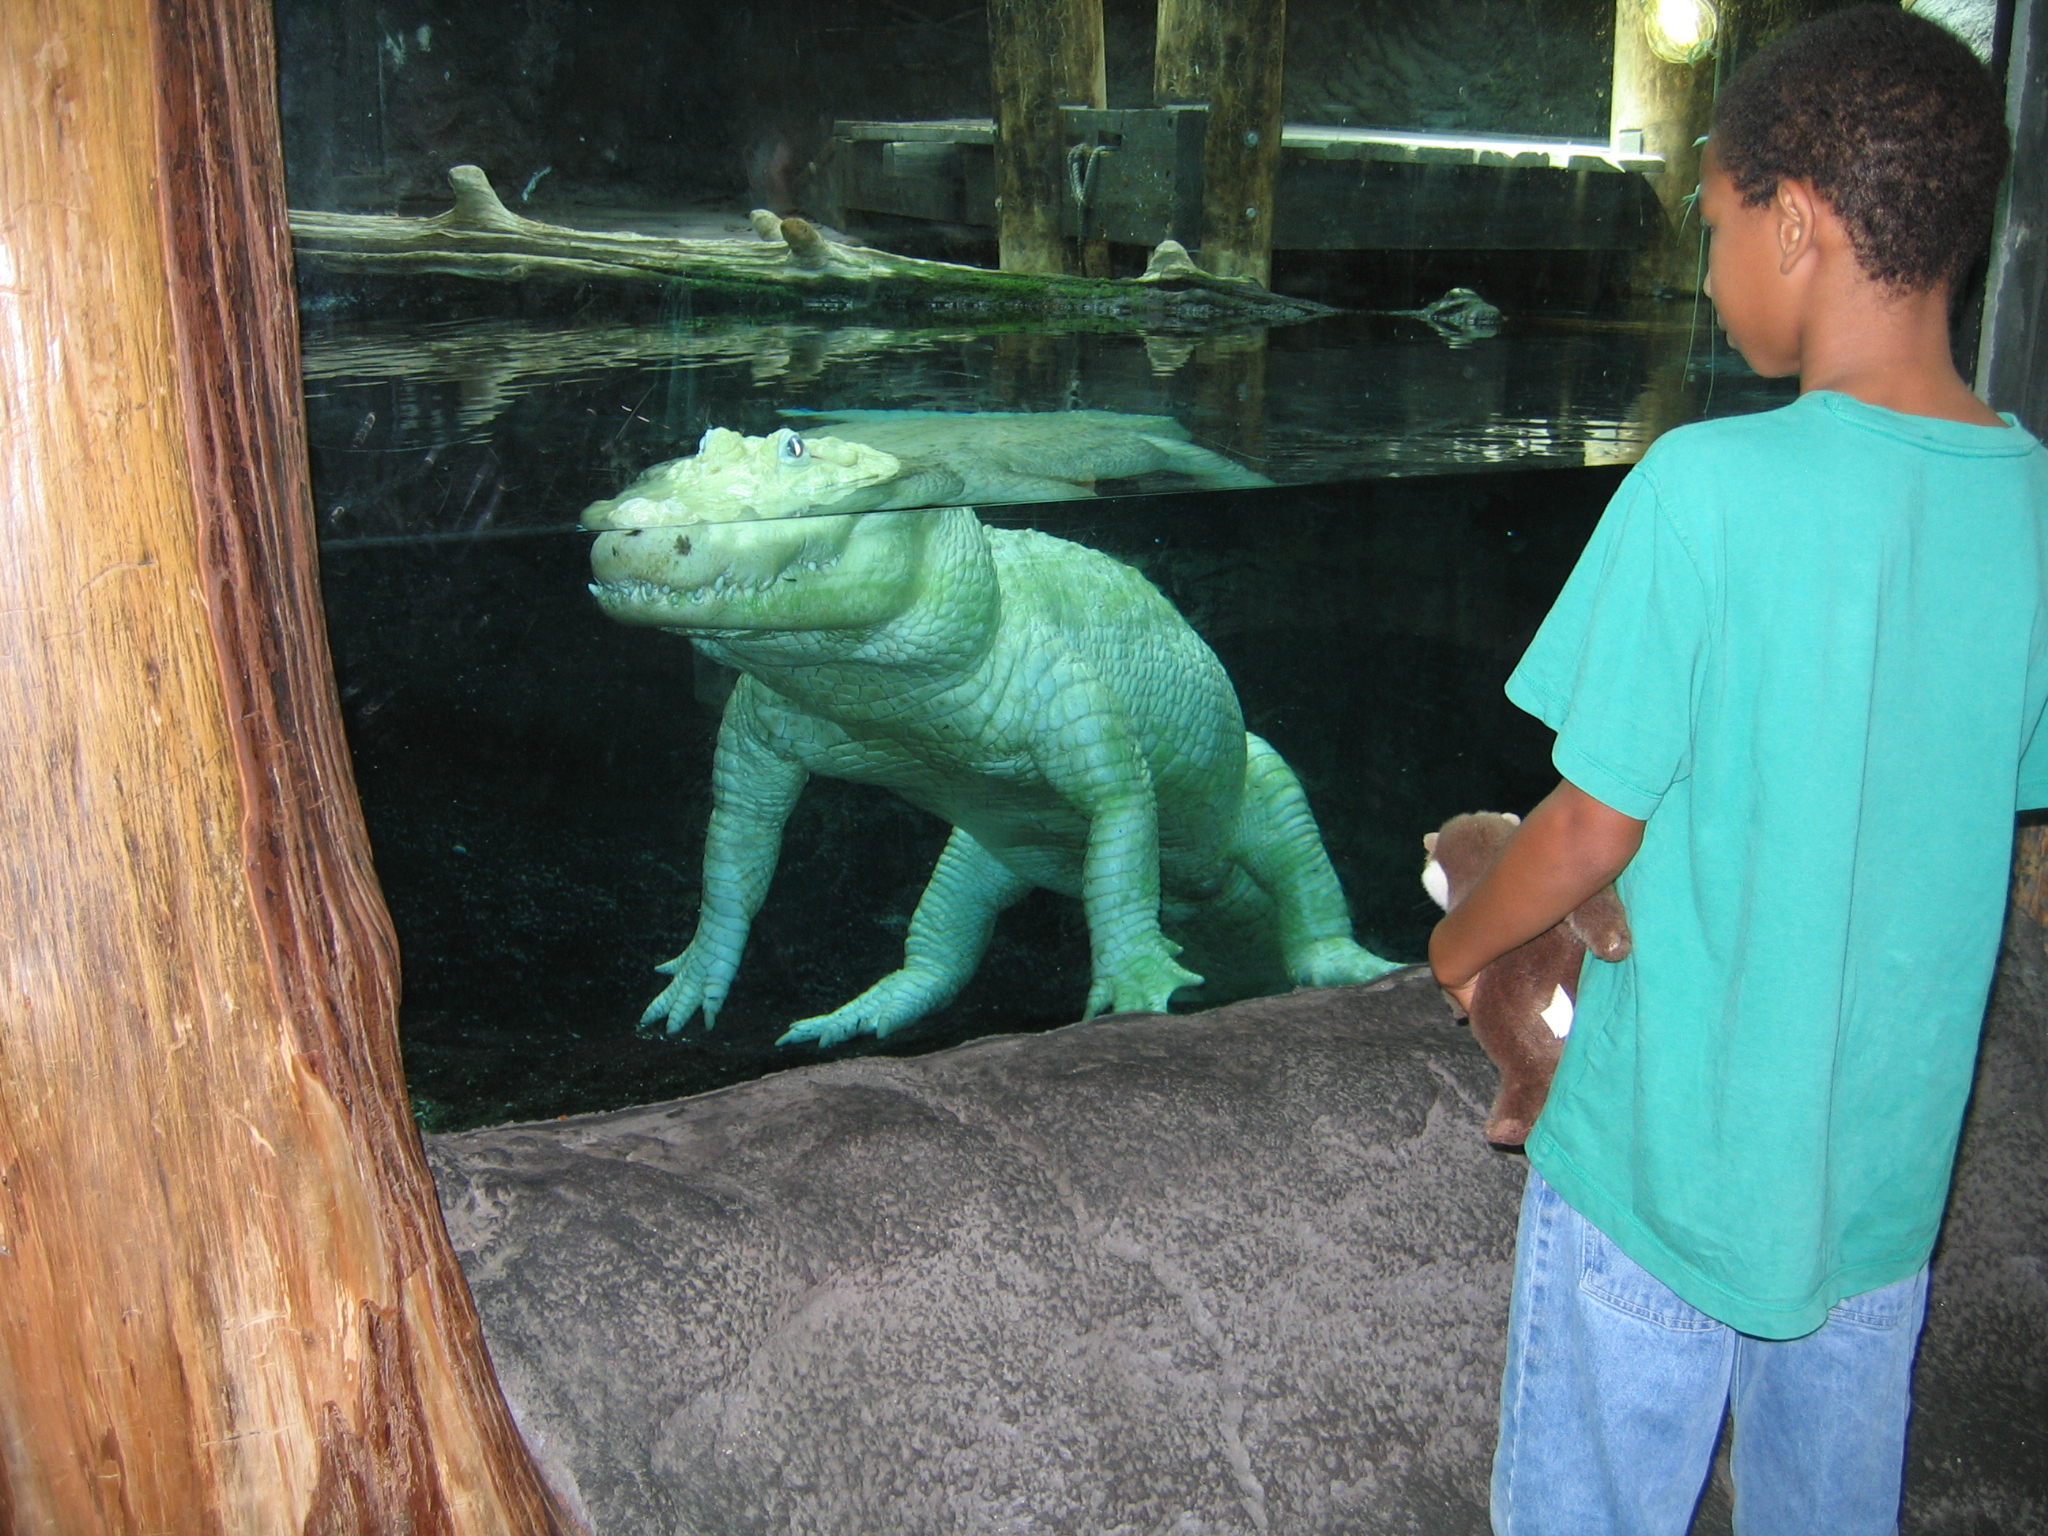 http://upload.wikimedia.org/wikipedia/commons/0/02/White_alligator_-_Aquarium_of_the_Americas.jpg